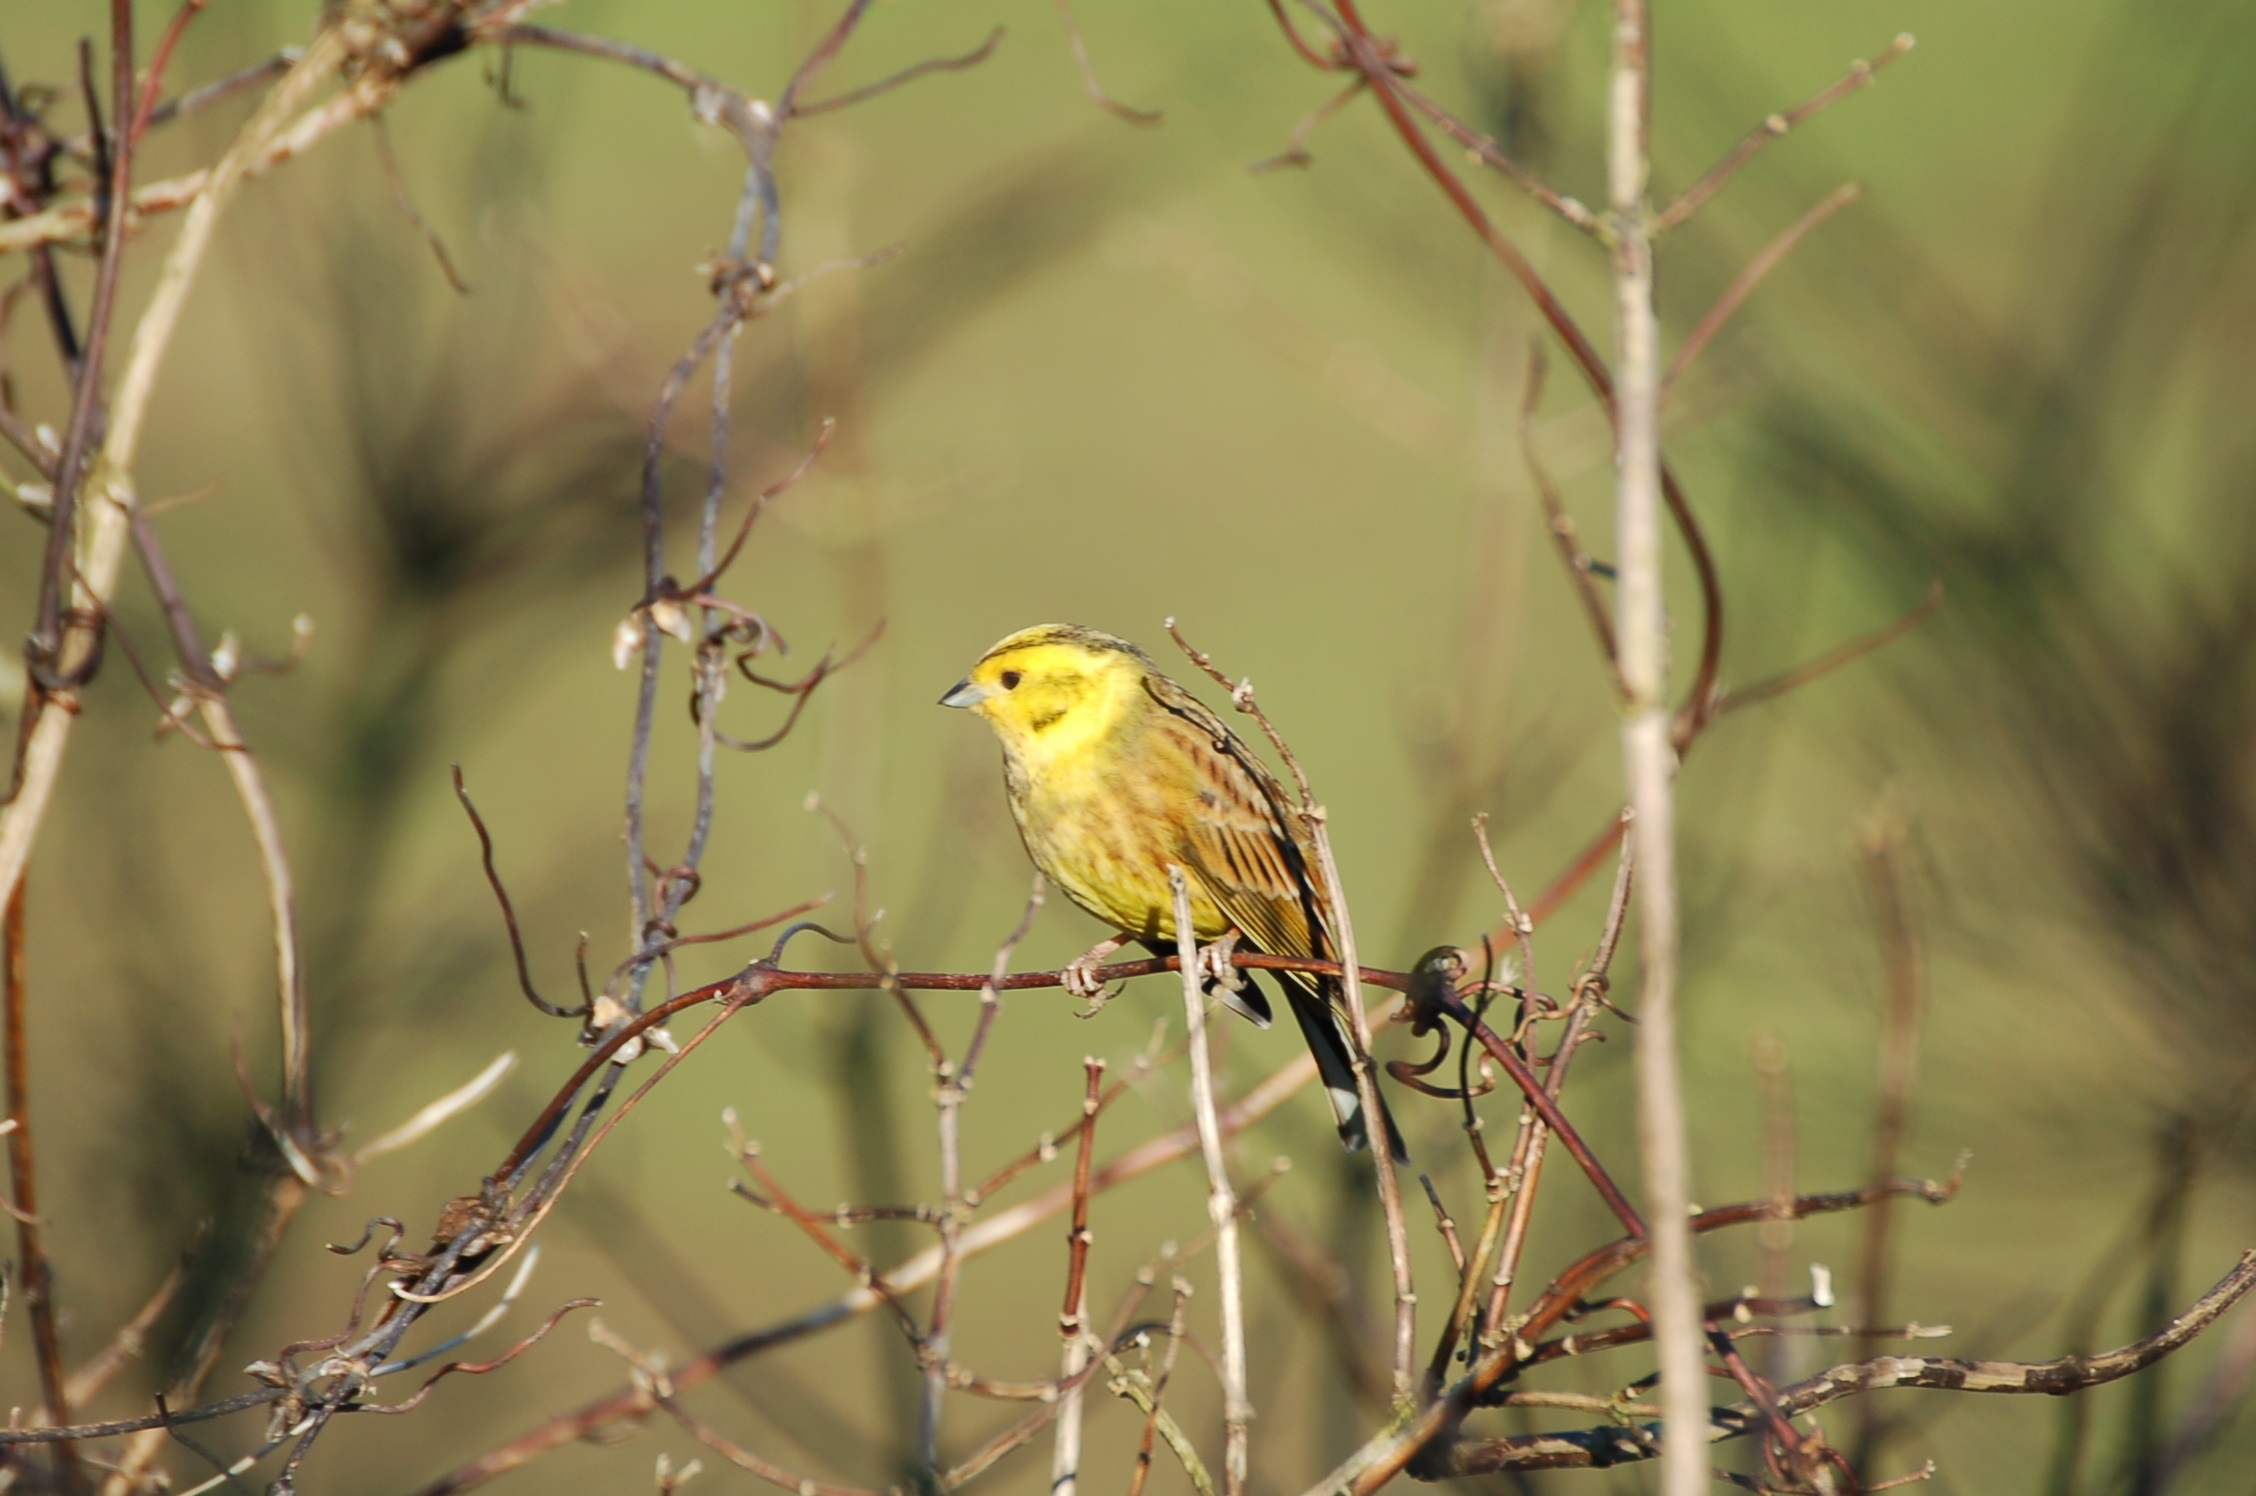 More than 970 farmers take part in Farmland Bird Count with record number of species recorded